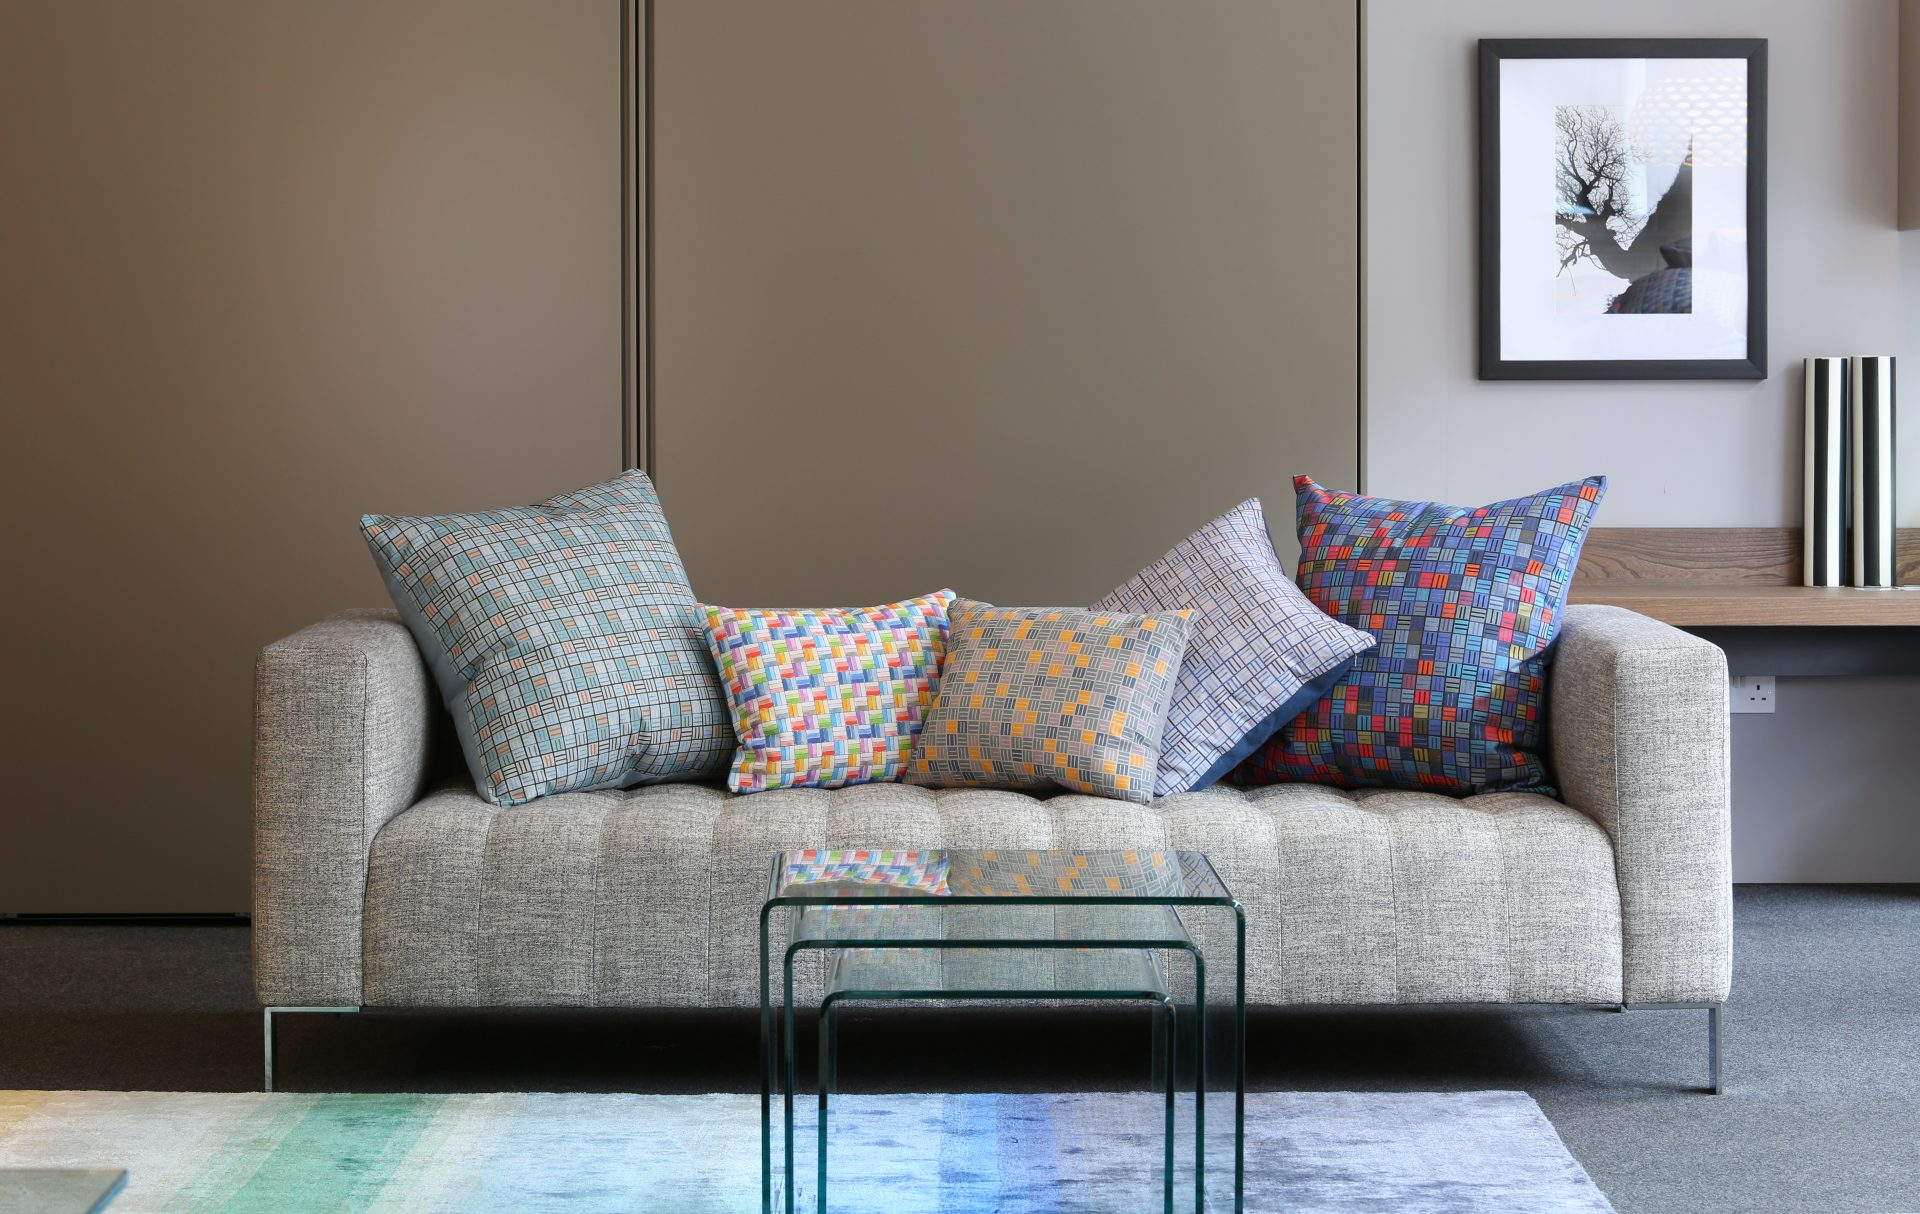 Maggie Bristow Collection Digitally Printed Cushion Covers Bespoke made in the UK